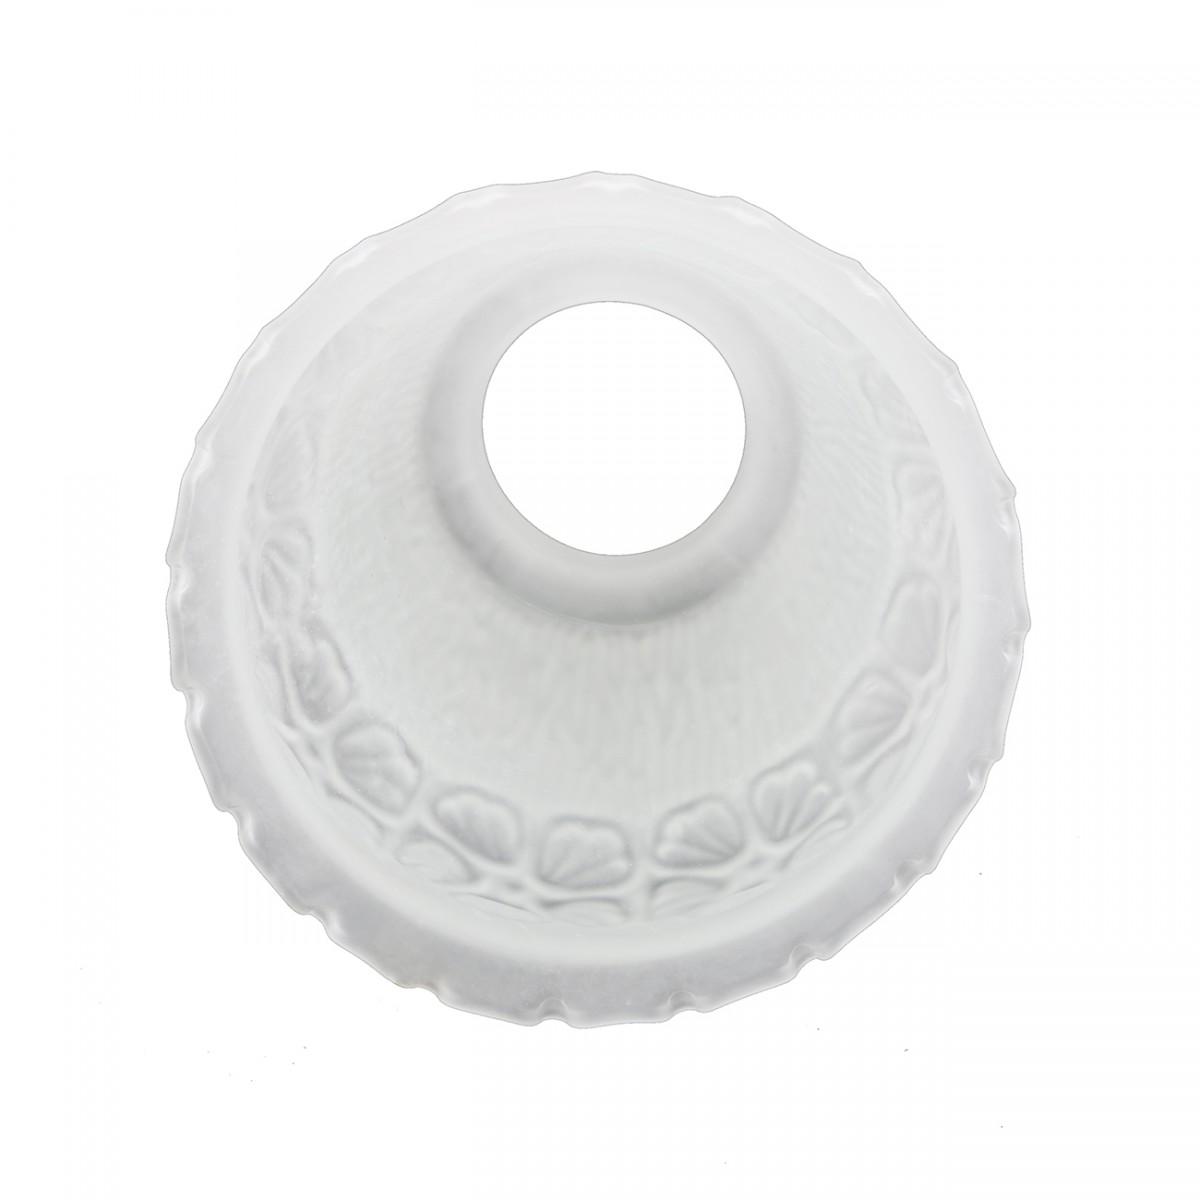 Renovators Supply White 5 12 X 2 14 Flower Bell Frosted Glass Lamp Shade Replacement Glass Lamp Shade Frosted White Lamp Shade Glass Lamp Shade